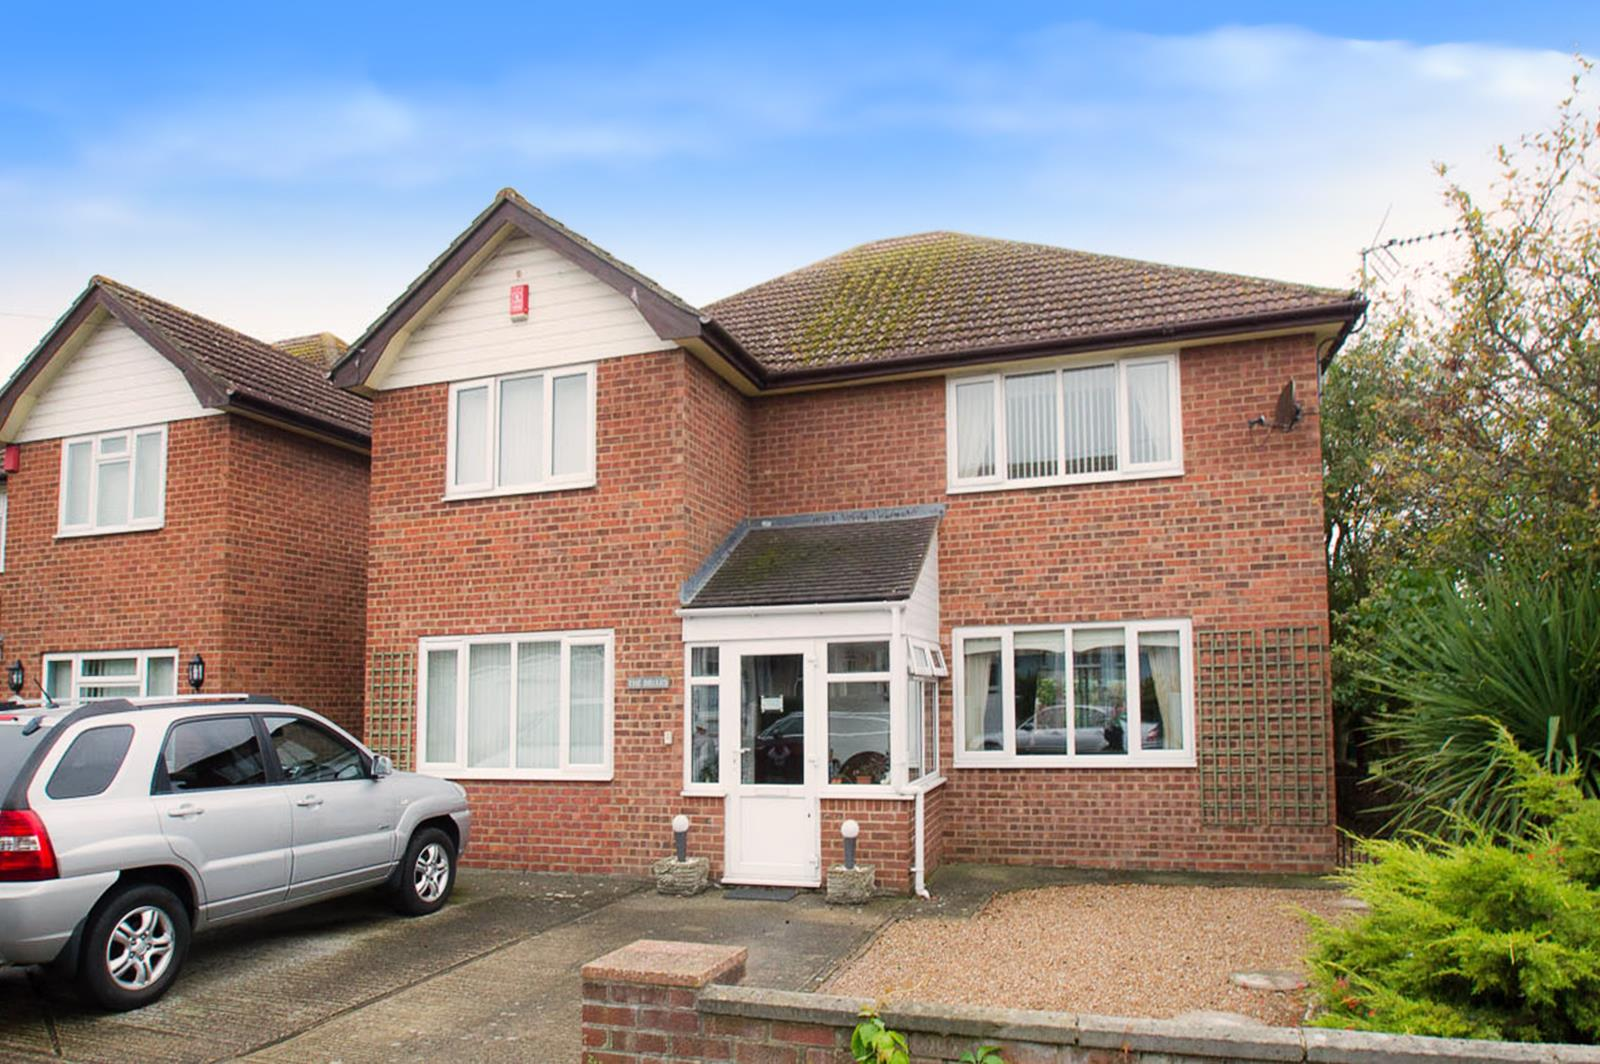 3 Bedrooms Detached House for sale in Seaville Drive, Pevensey Bay, Pevensey